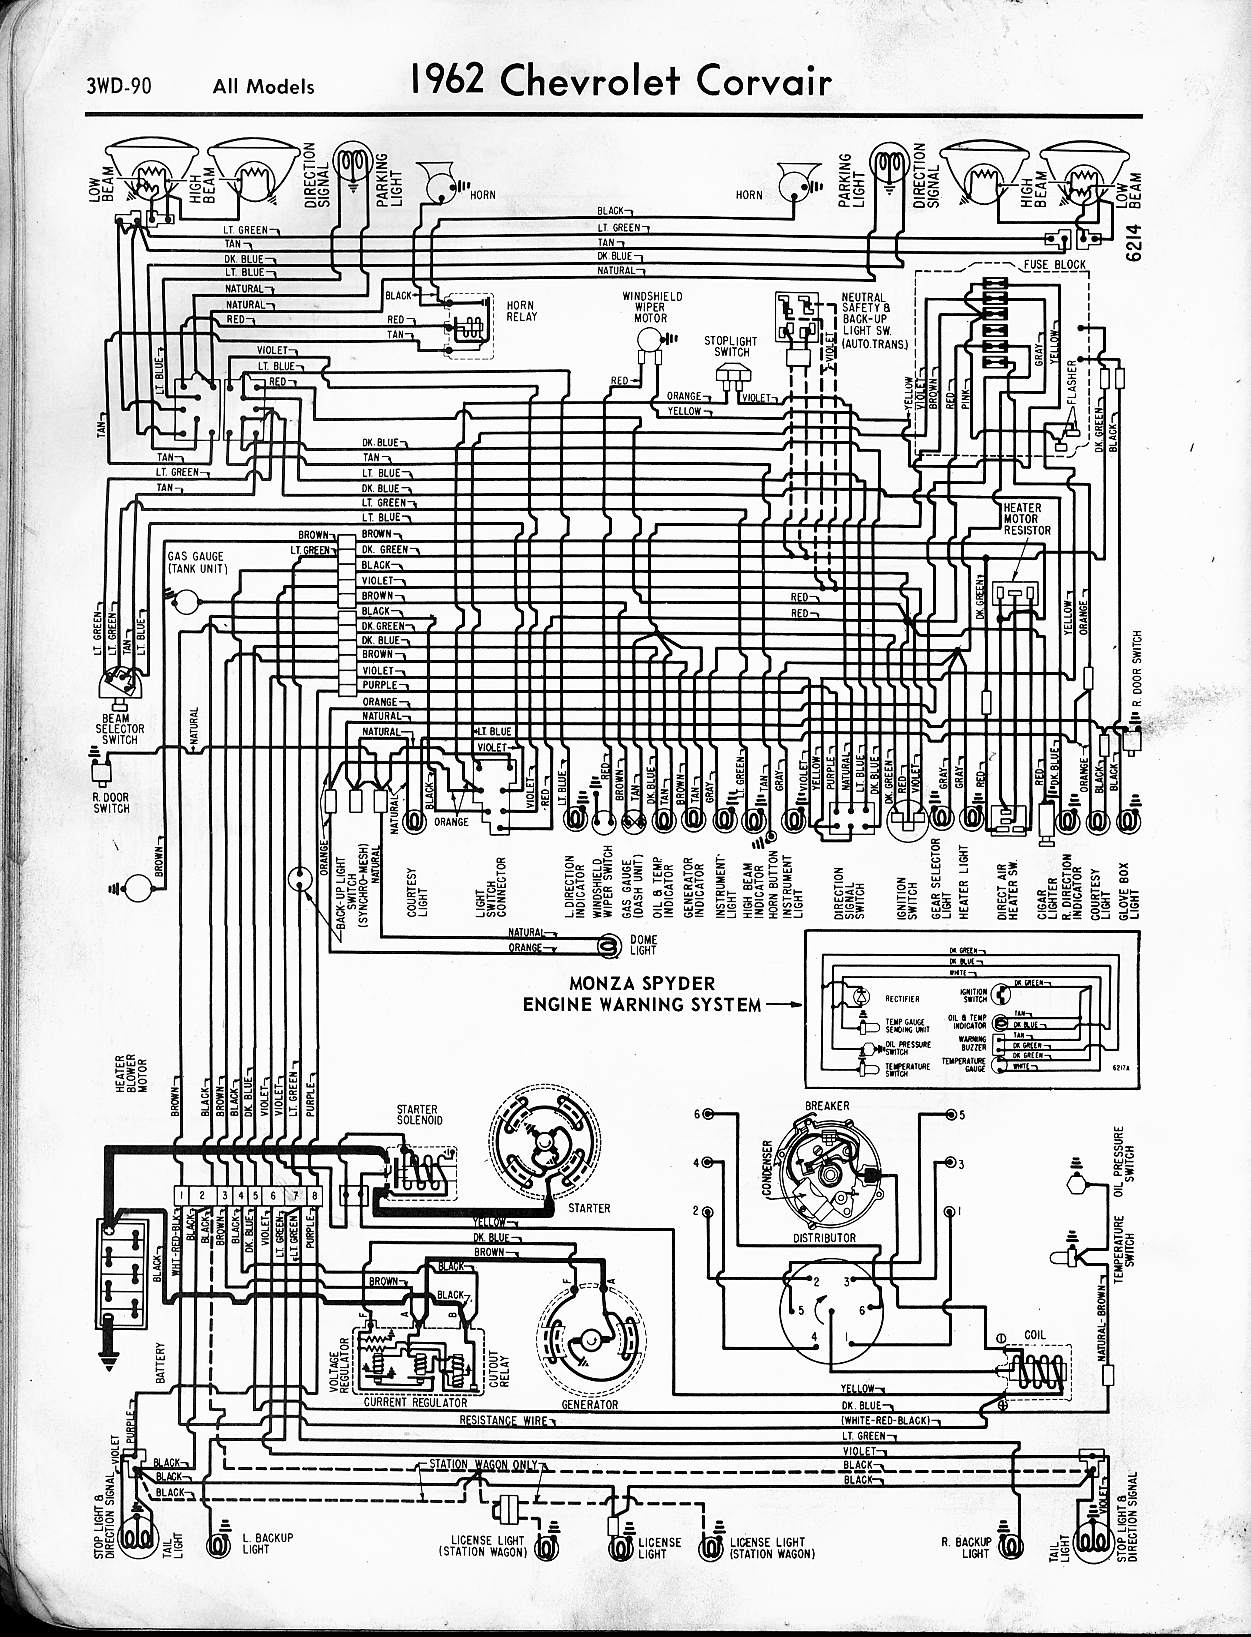 1966 corvair convertible wiring diagram wire center u2022 rh marstudios co 1962 Corvair Ignition Wiring Diagram 1962 Corvair Ignition Wiring Diagram